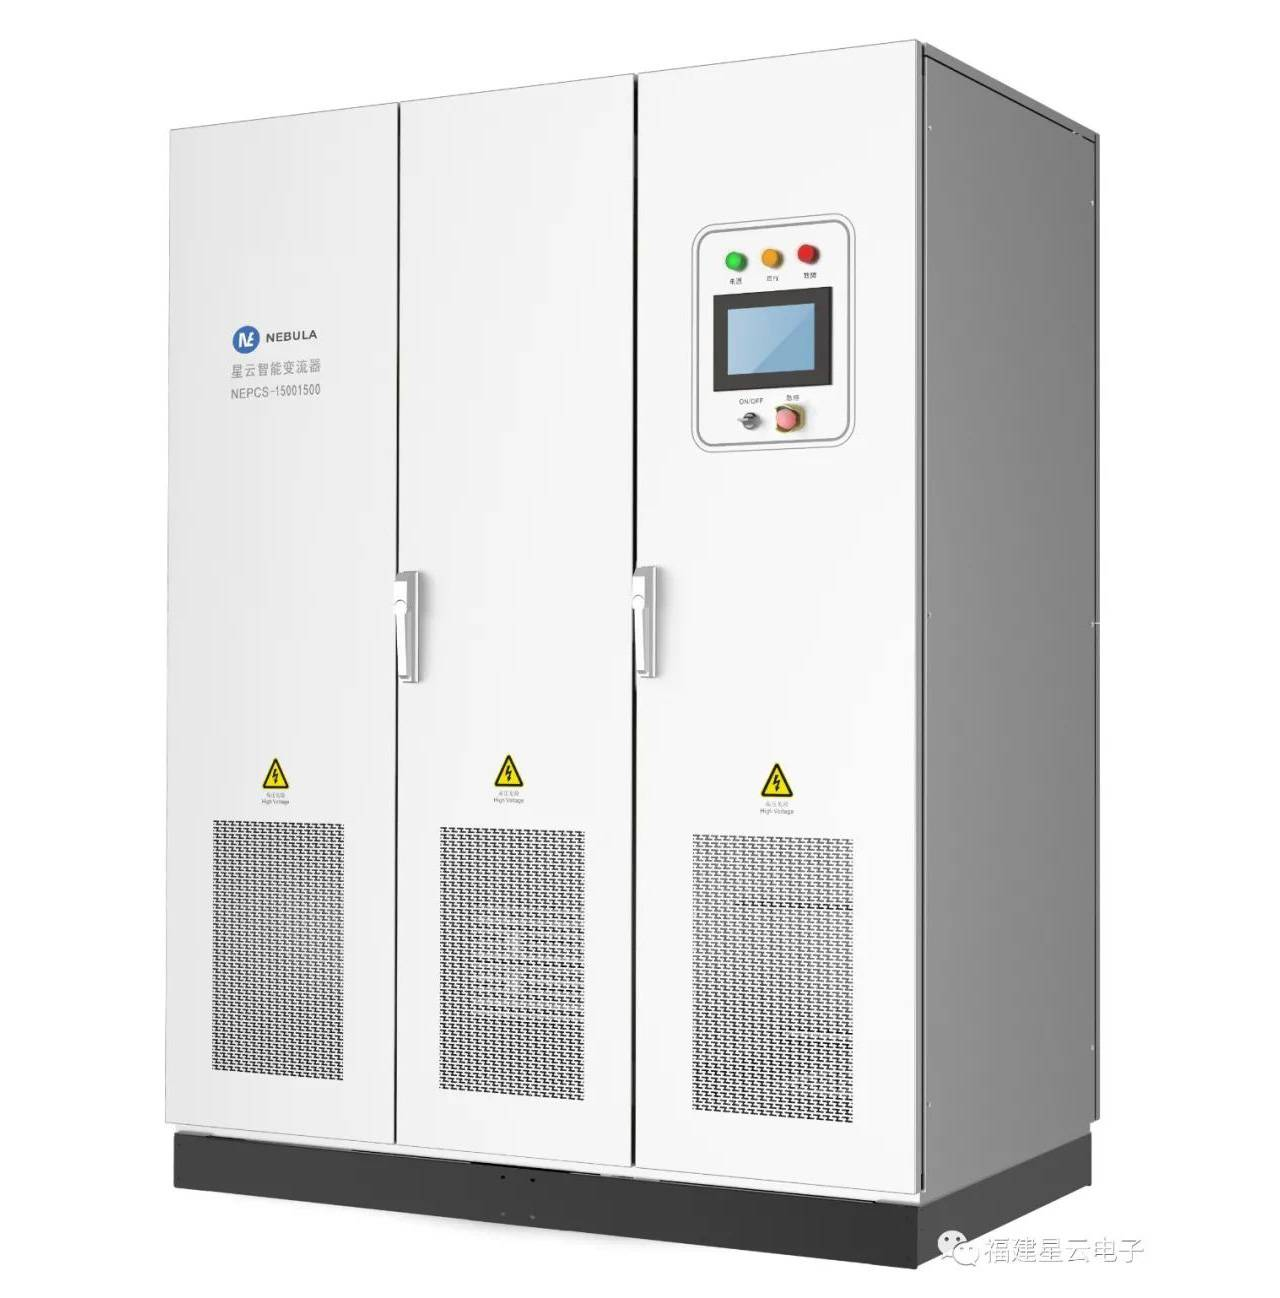 Nebula launches 1.5MW converter to welcome the new era of 1500V energy storage